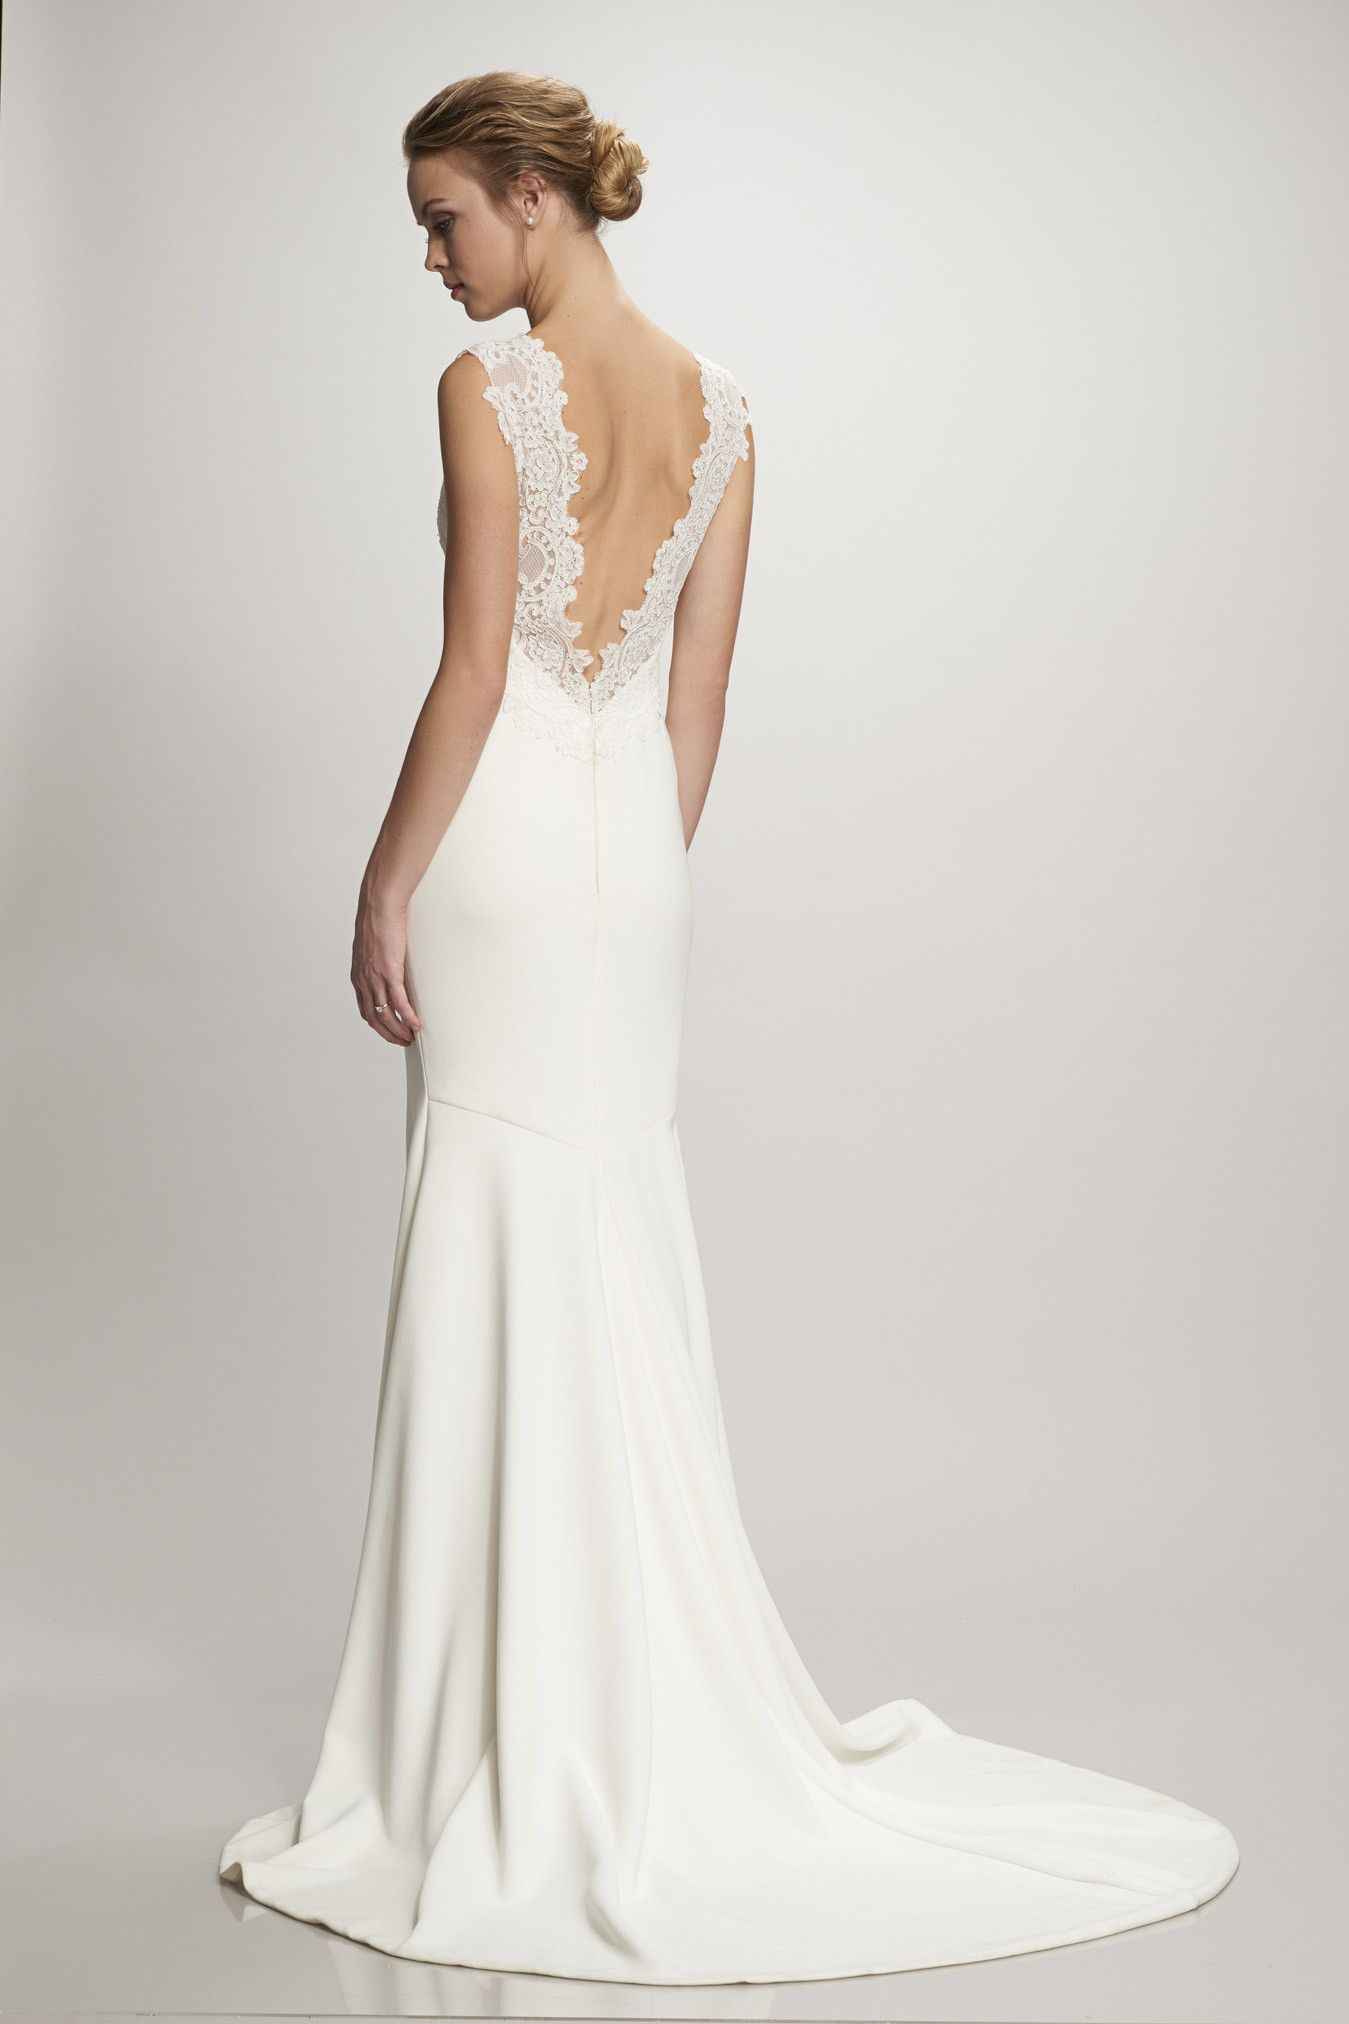 Gorgeous Nadia Stretch Crepe And Lace Wedding Dress Available At Carrie Karibo Bridal Cincinnati Ohio Www Carriekaribobridal